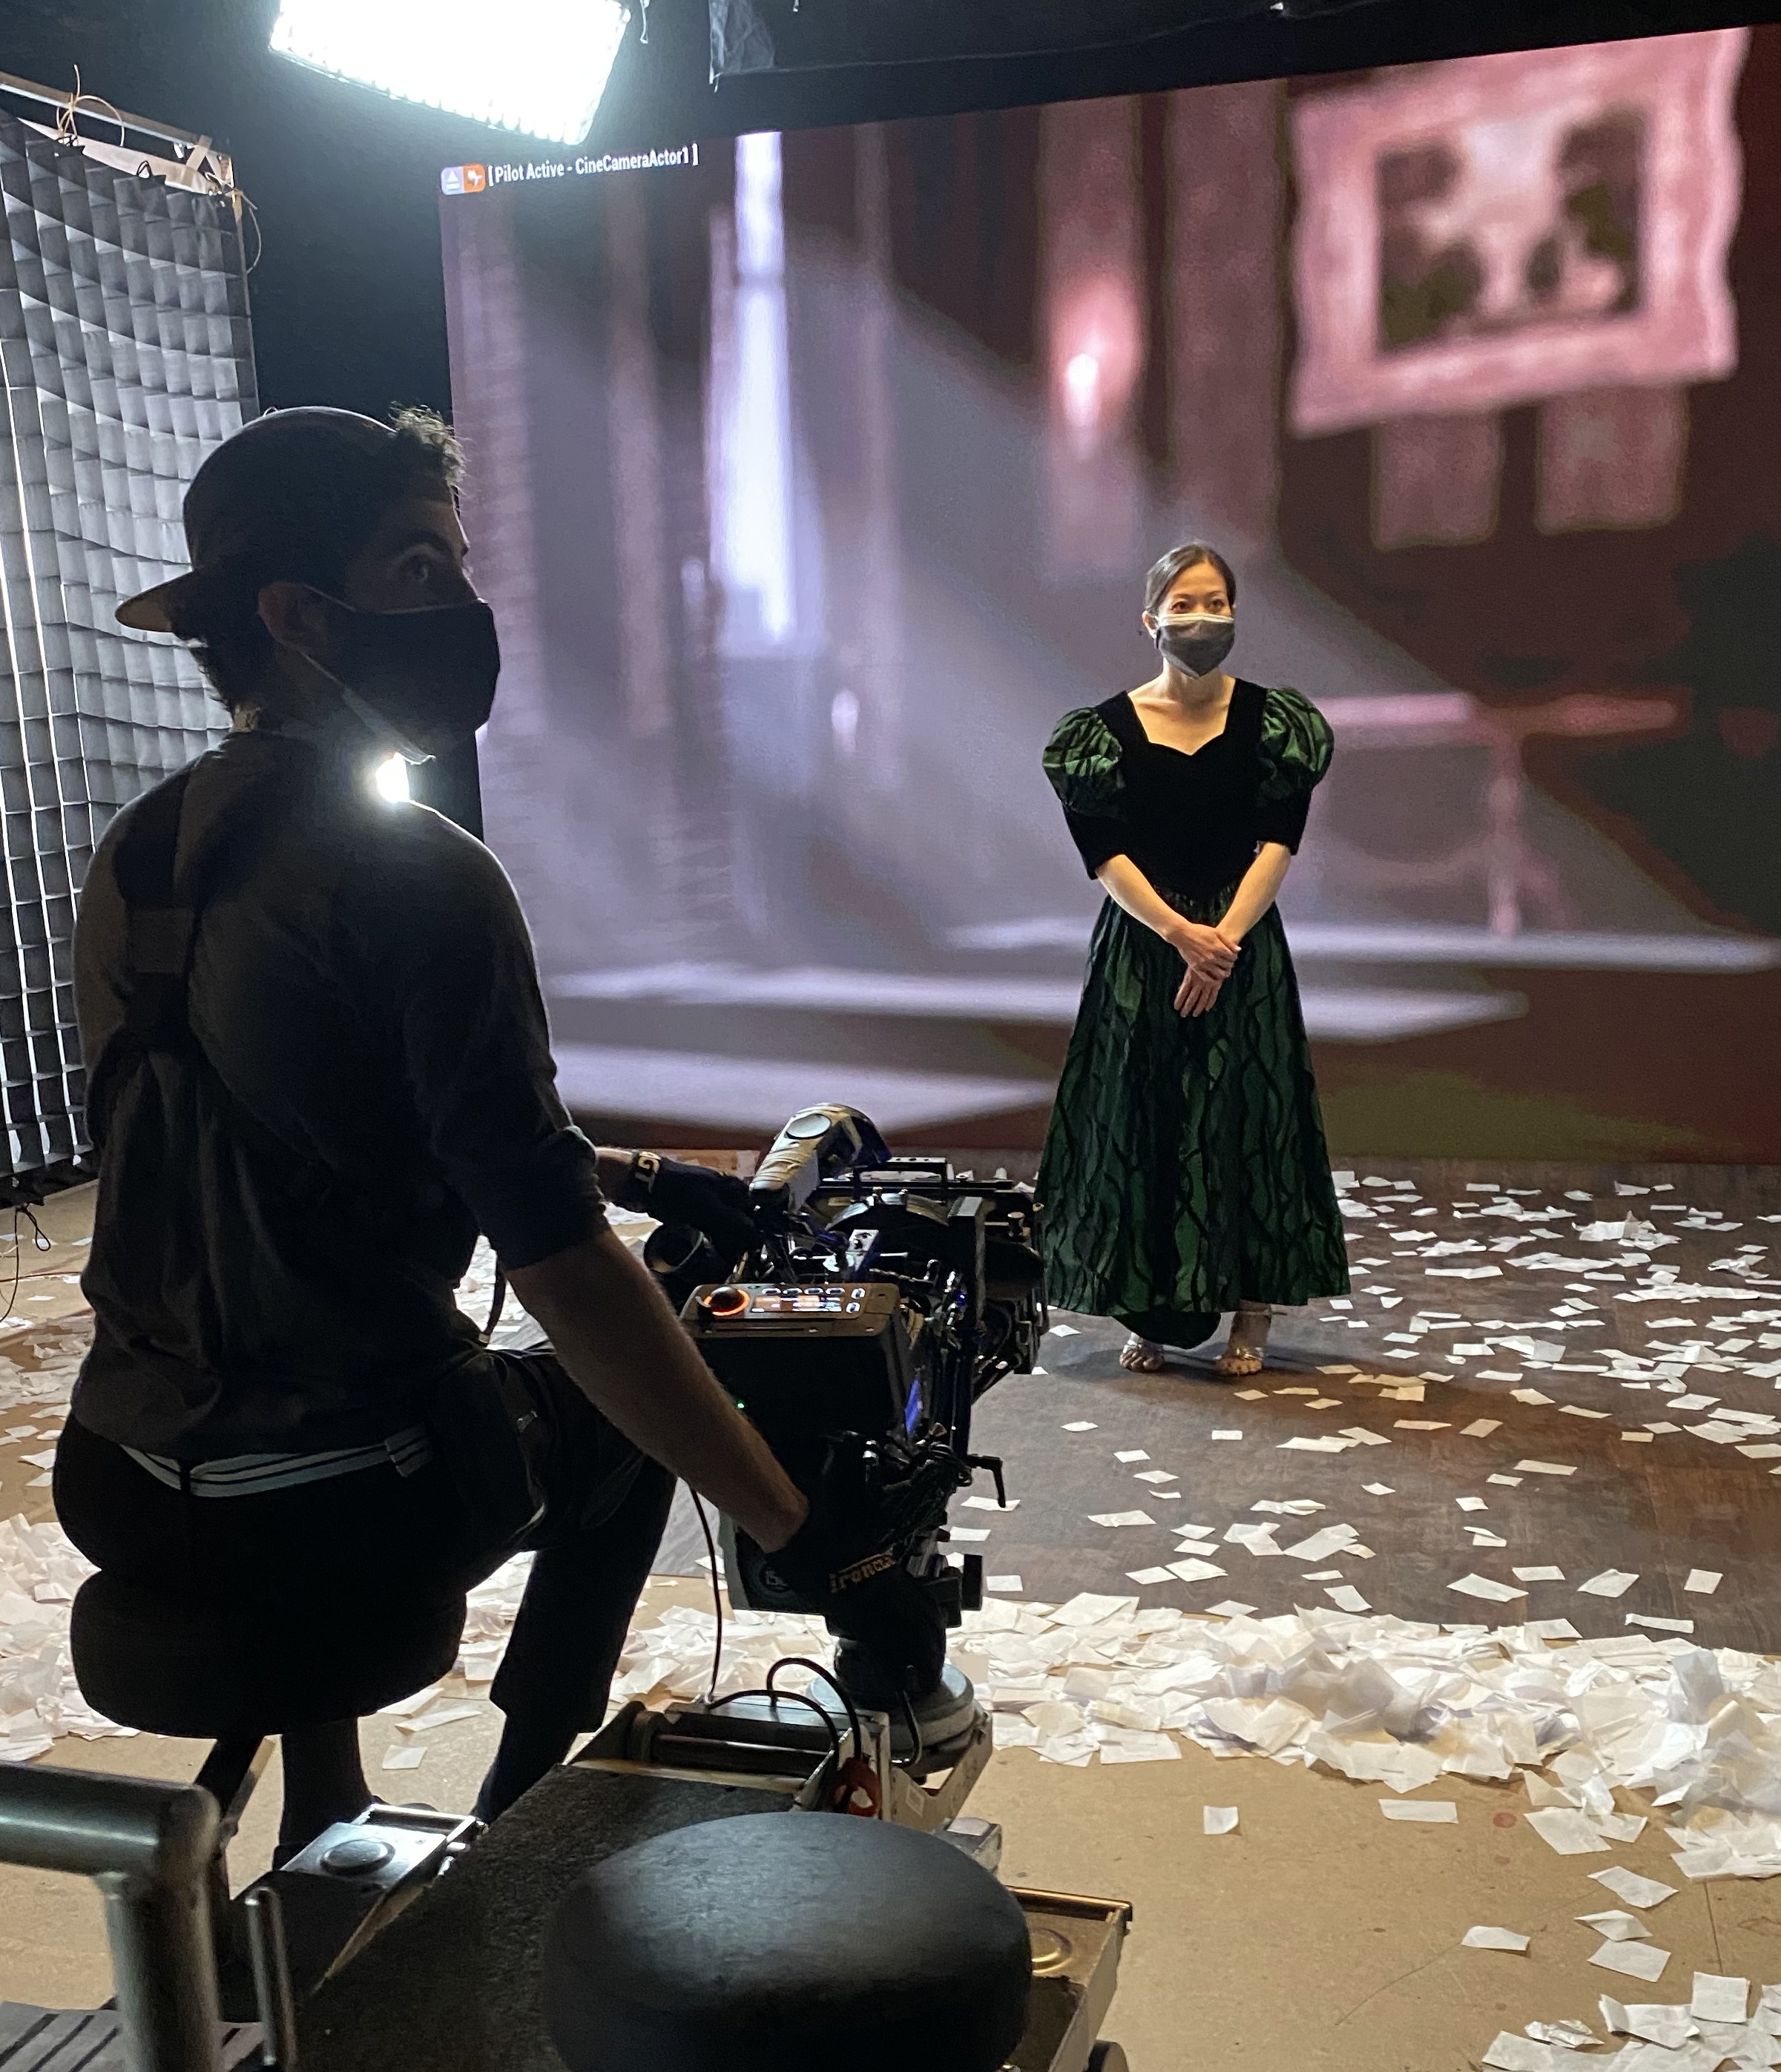 A ballroom dancer waits for her scene, at the new LED virtual production wall in the Digital Media Arts Center, which combines live-action and digital filmmaking